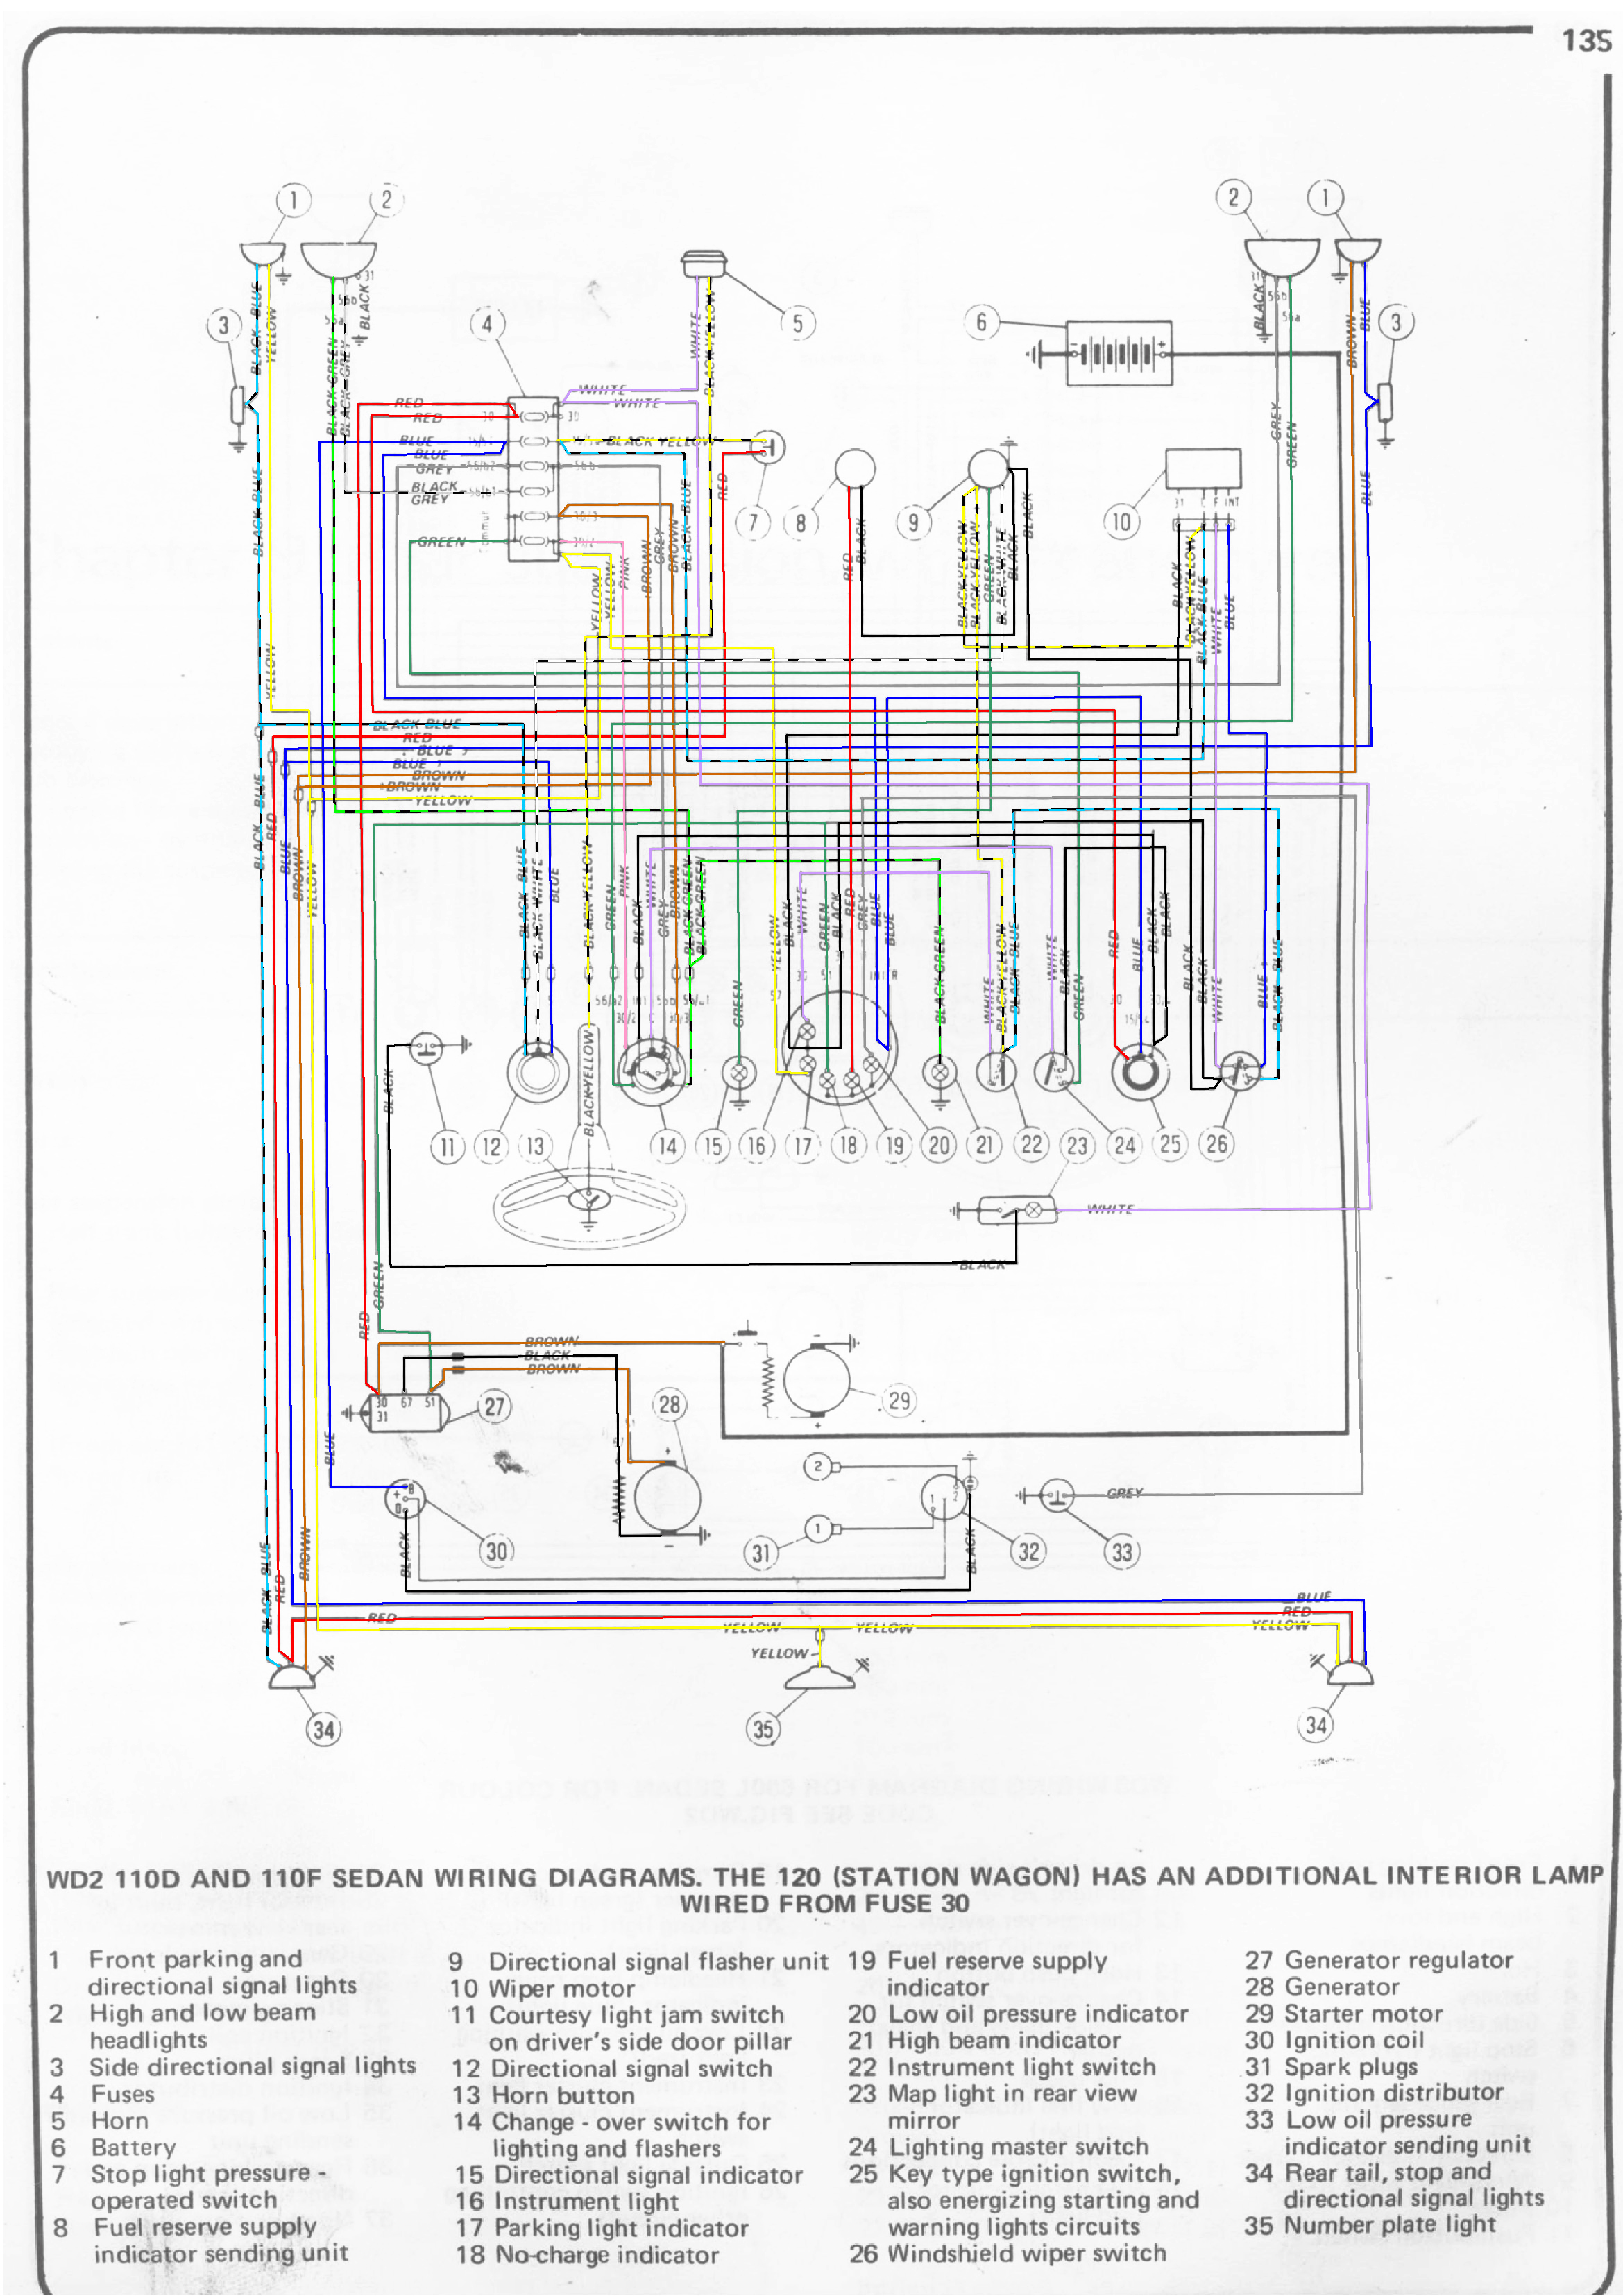 wiring diagram for fiat scudo simple wiring diagramsfiat scudo radio wiring  diagram simple wiring diagrams kama